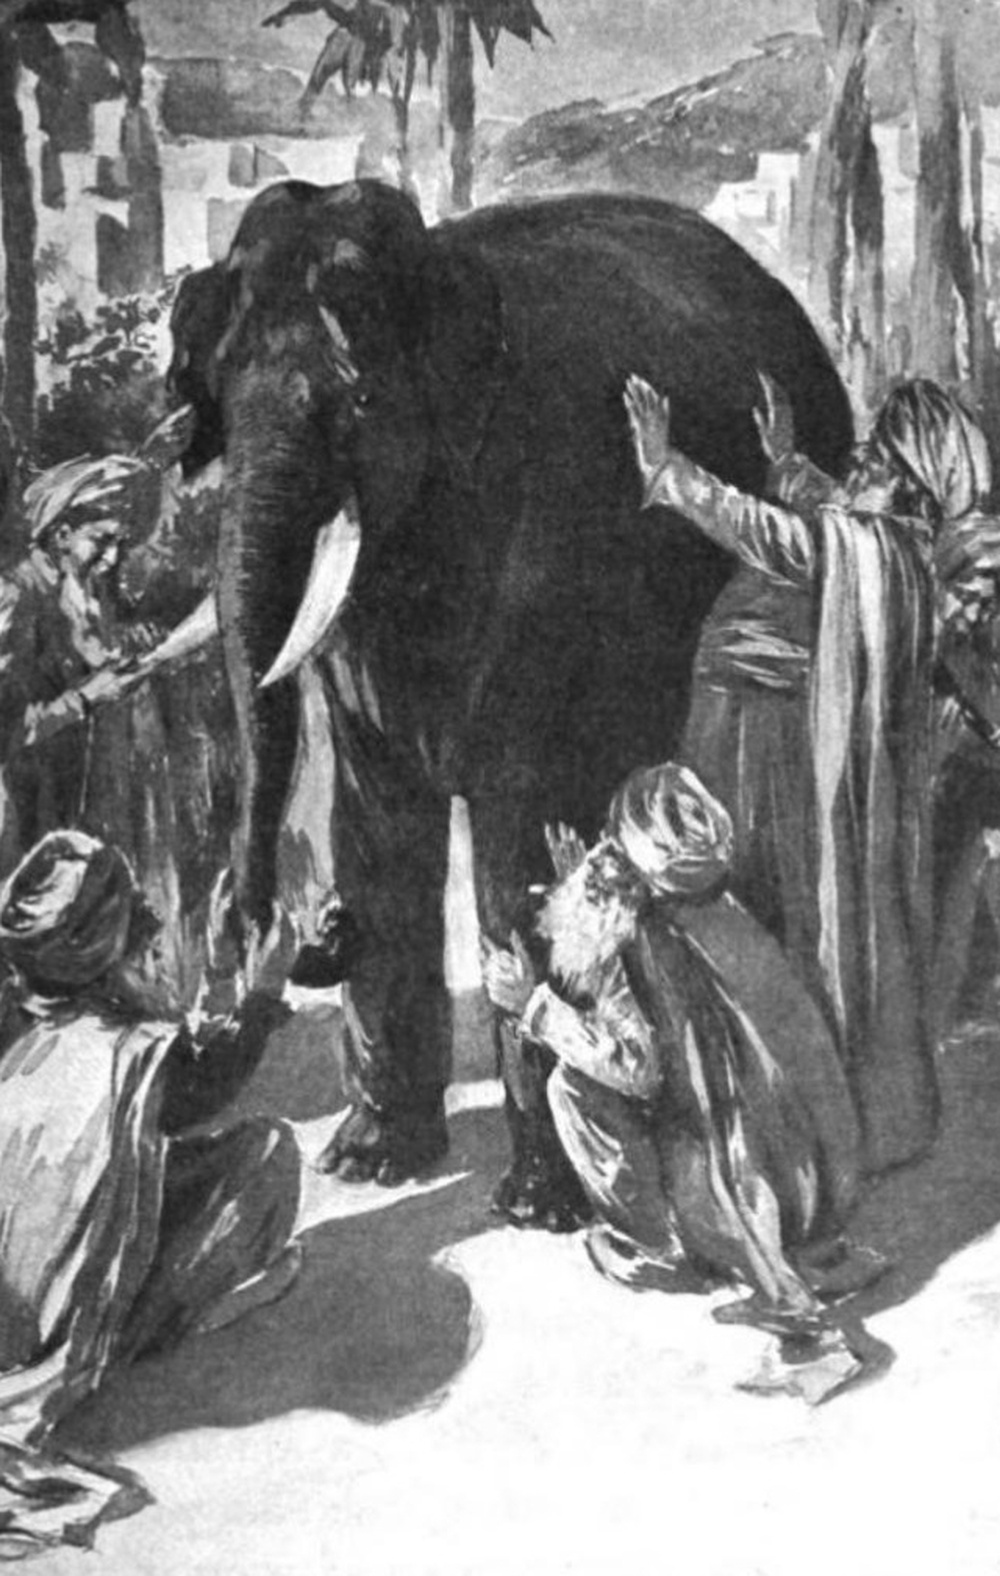 [The parable of blind men and an elephant] Humans have a tendency to claim absolute truth based on their limited, subjective experience